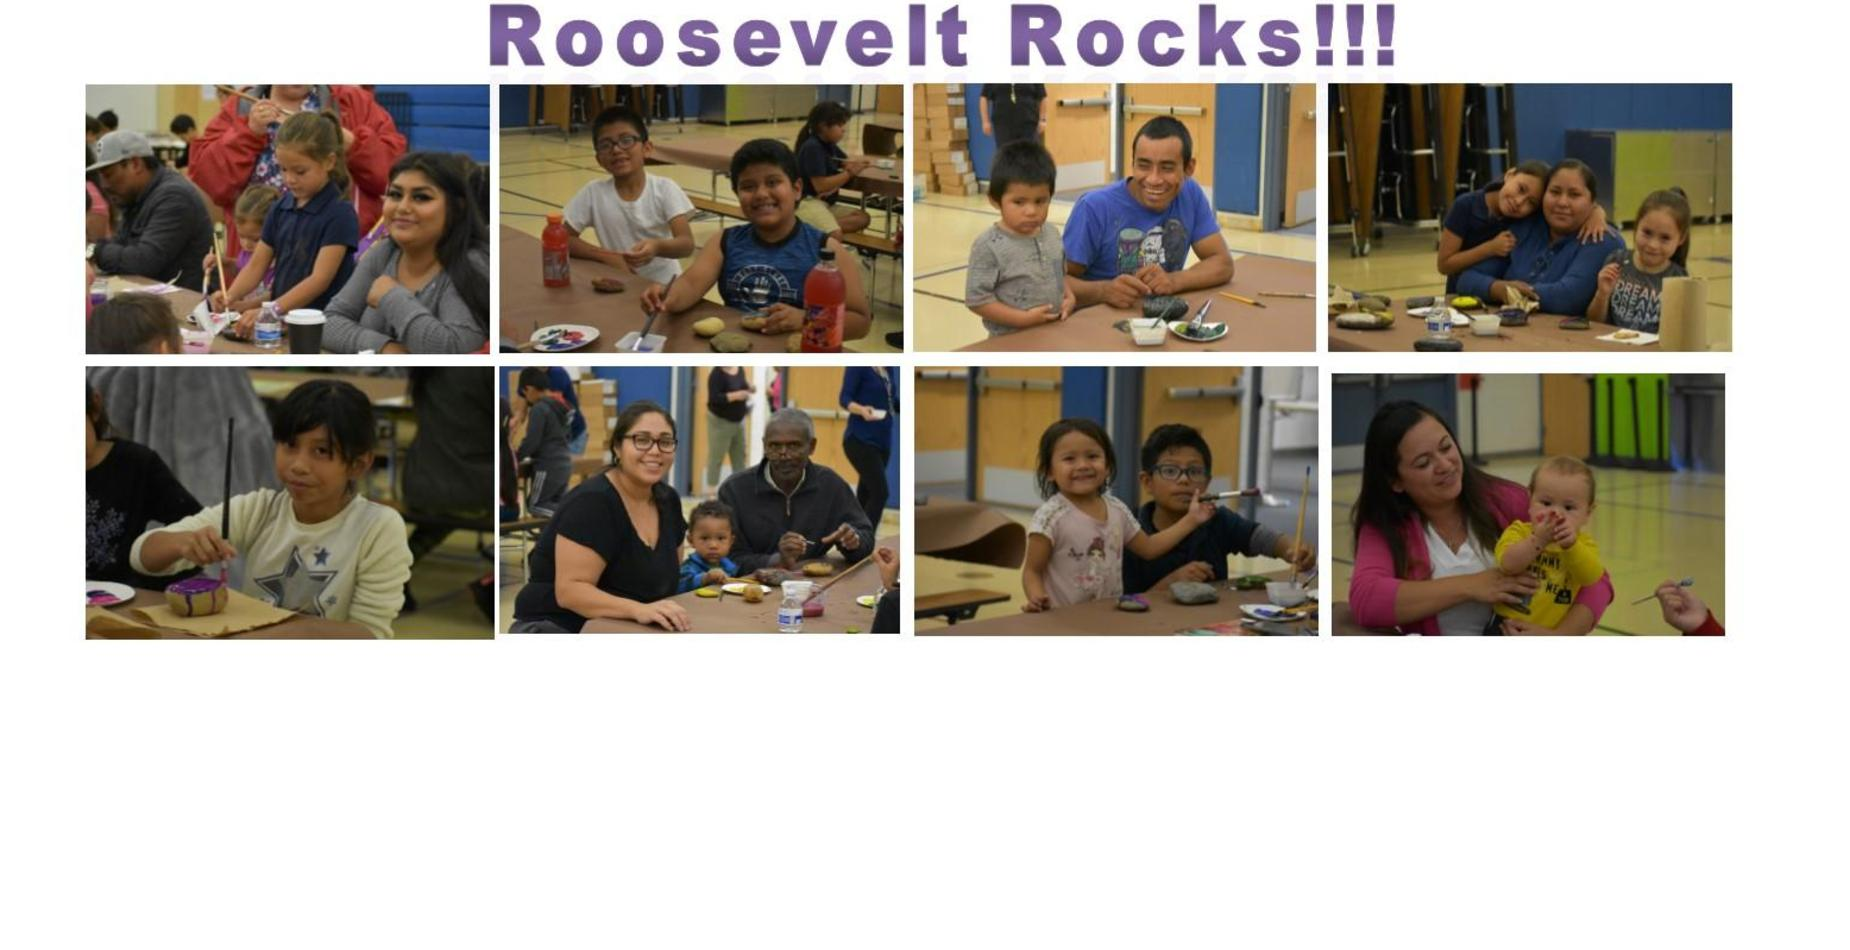 Roosevelt Rocks!  Pictures of kids painting rocks with their parents.